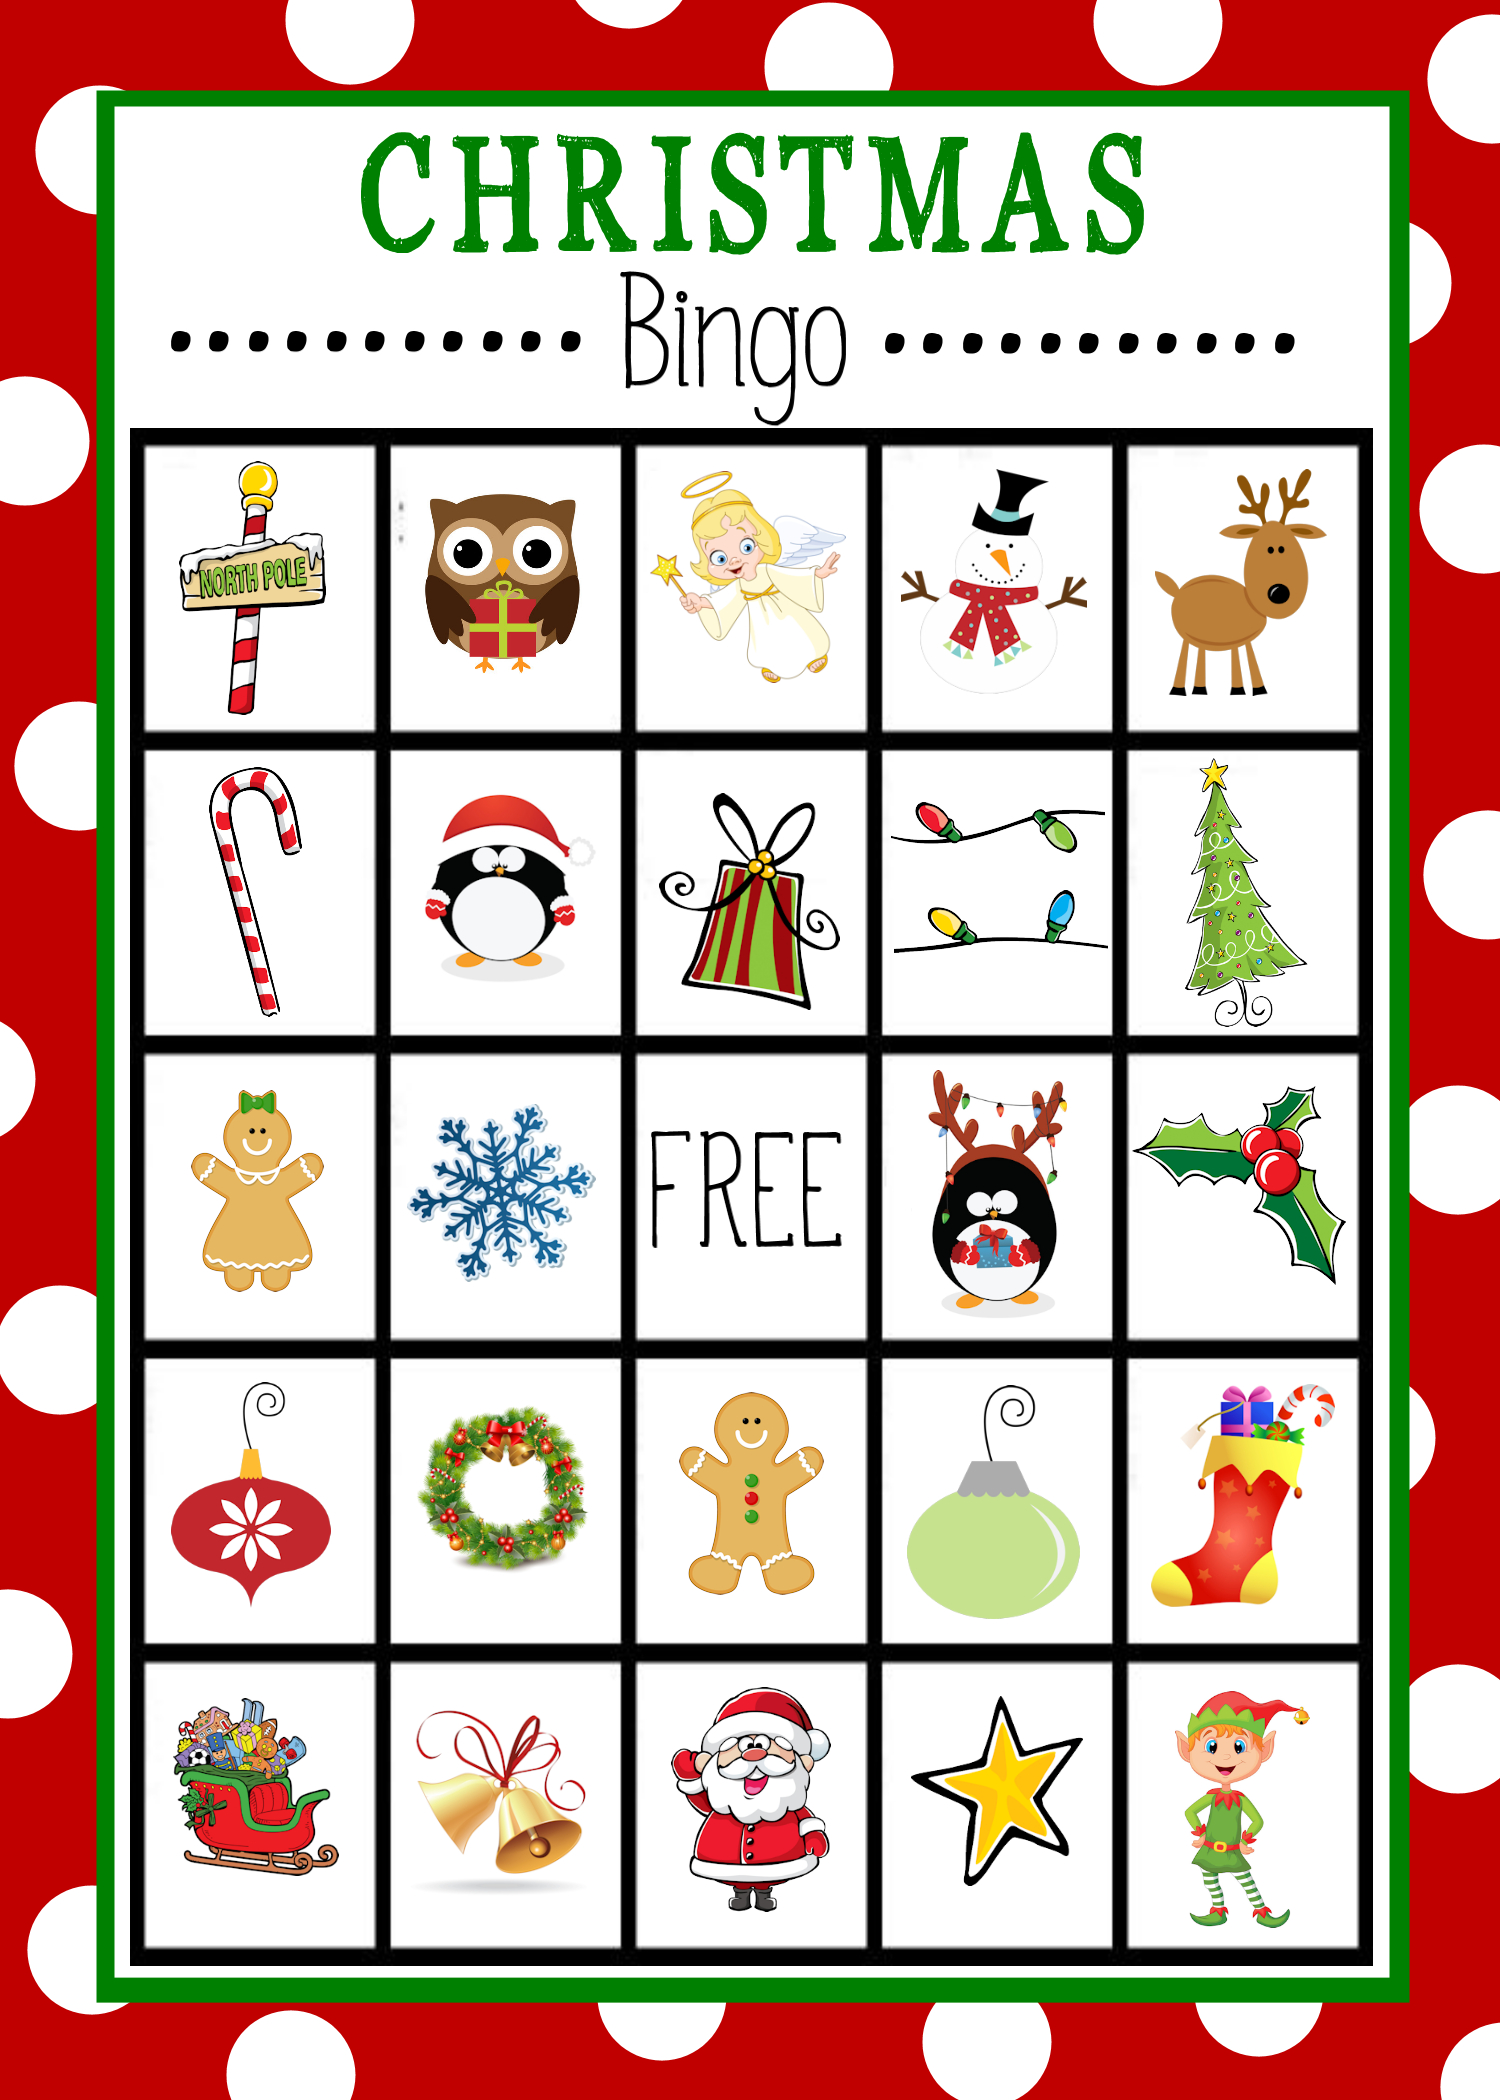 Free Printable Kids Christmas Bingo Game | Christmas Bingo